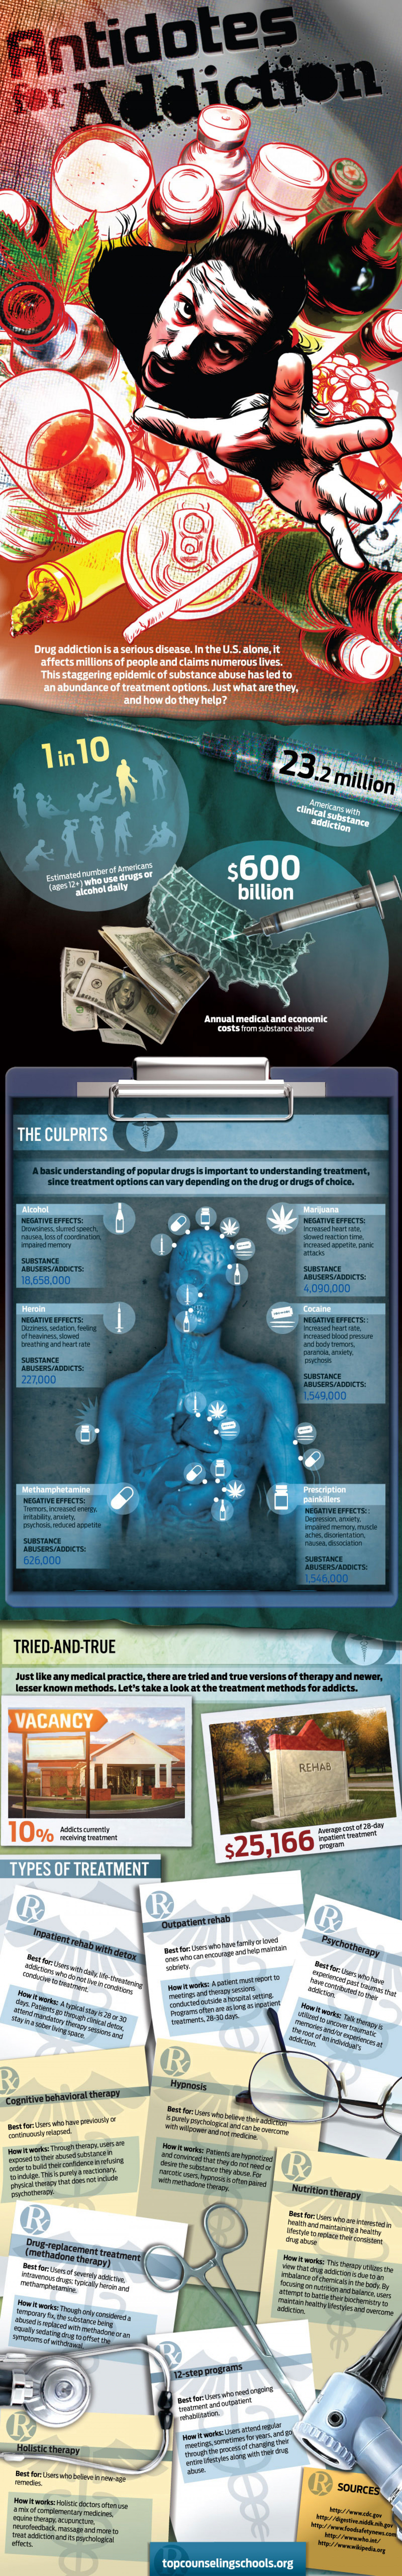 Antidotes for Addiction Infographic